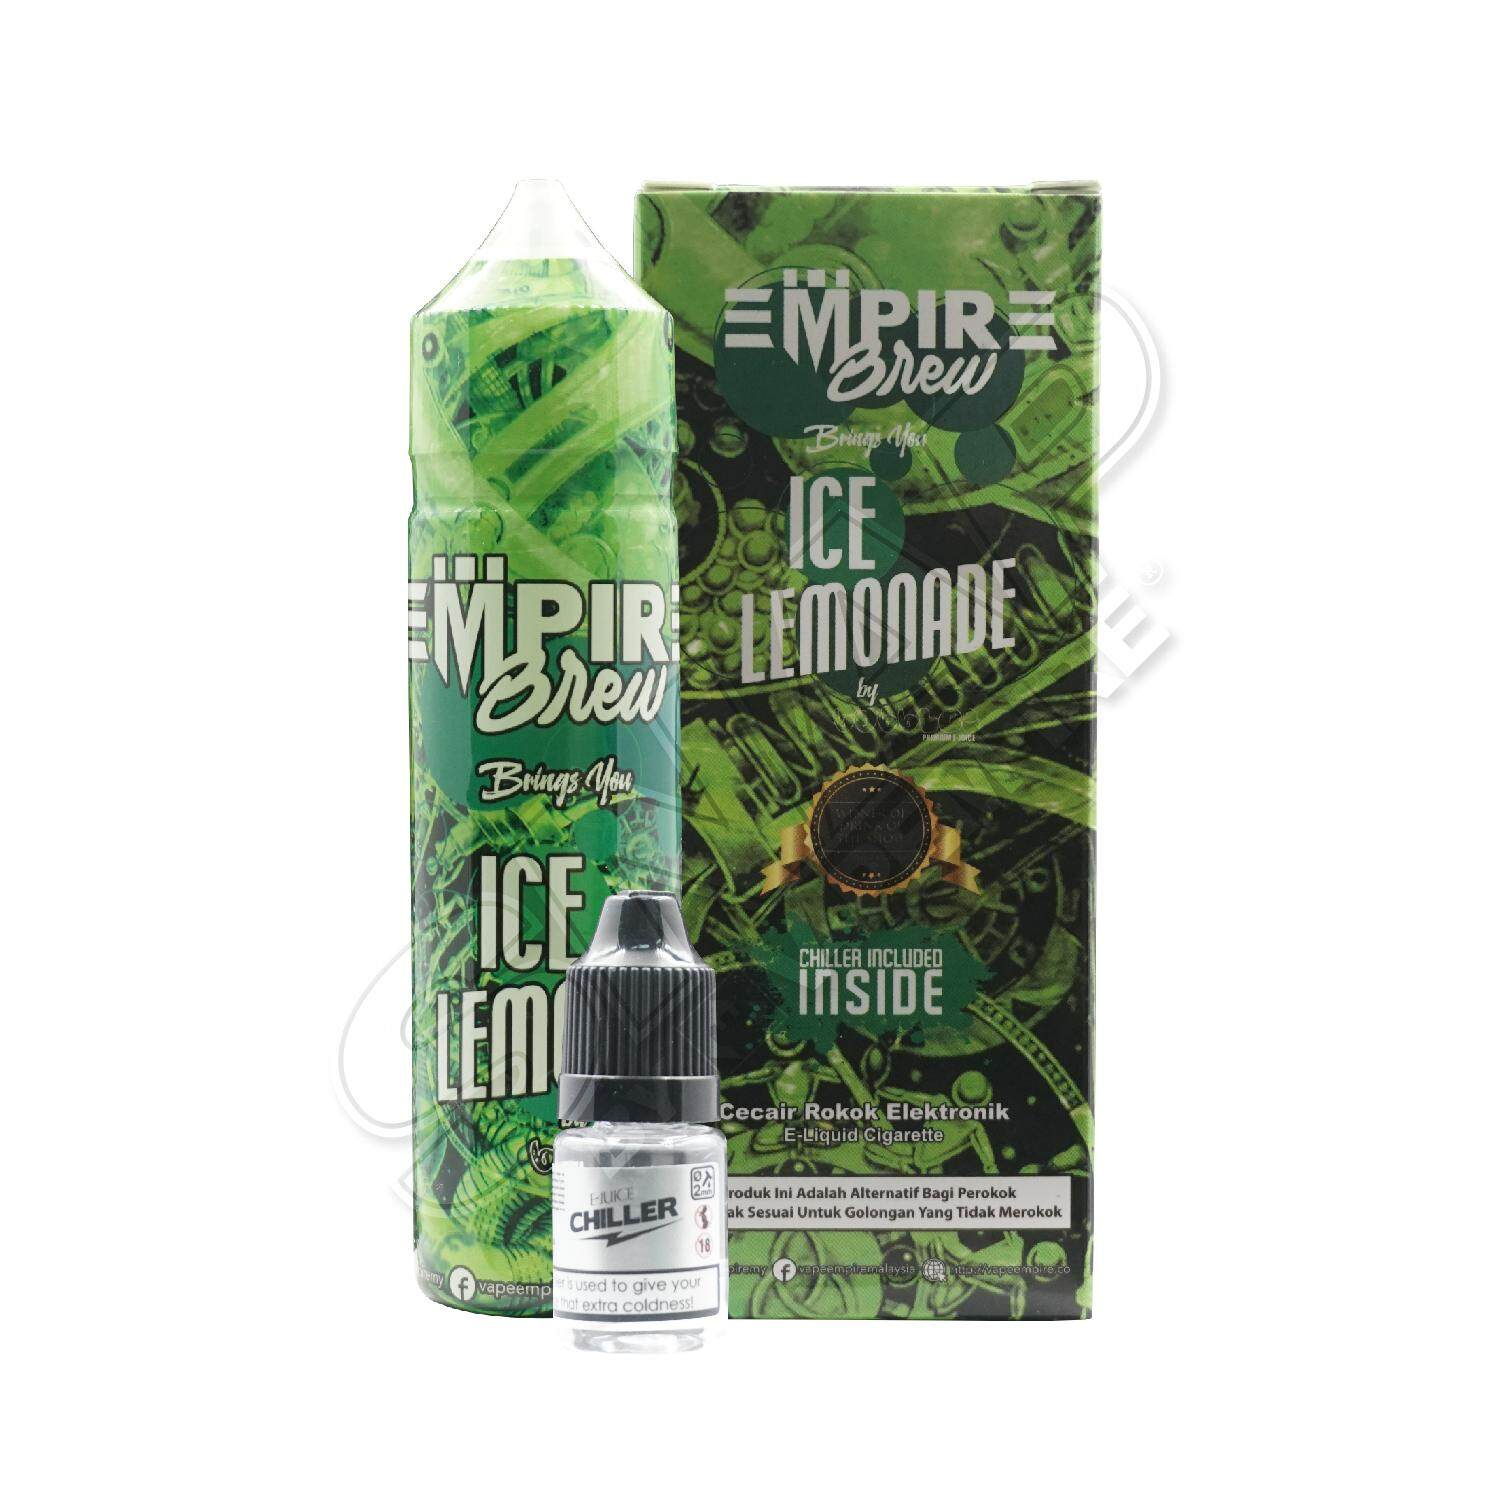 ... 30ml Bv 666 6mg Nicotine For Source · Gshop Premium E Liquids. Source · (NEW) Empire Brew 60ML New Packaging with Box and Free Chiller